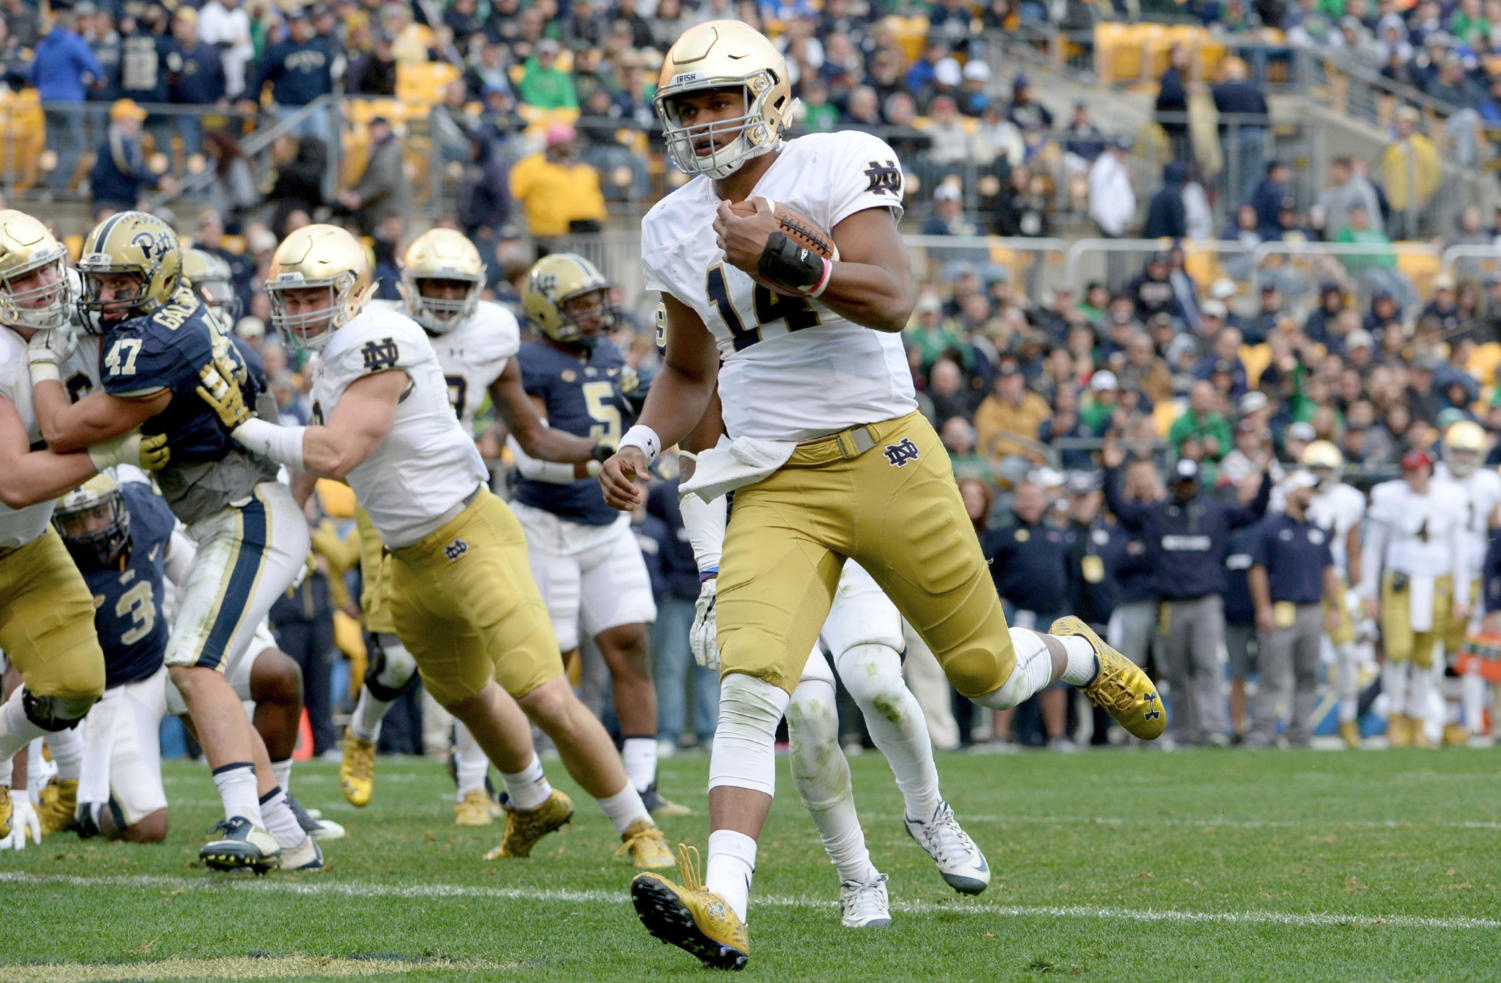 Then-quarterback for Notre Dame DeShone Kizer scores a touchdown on a 2-yard against Pitt in the fourth quarter at Heinz Field Nov. 7, 2015. Notre Dame won 42-30.